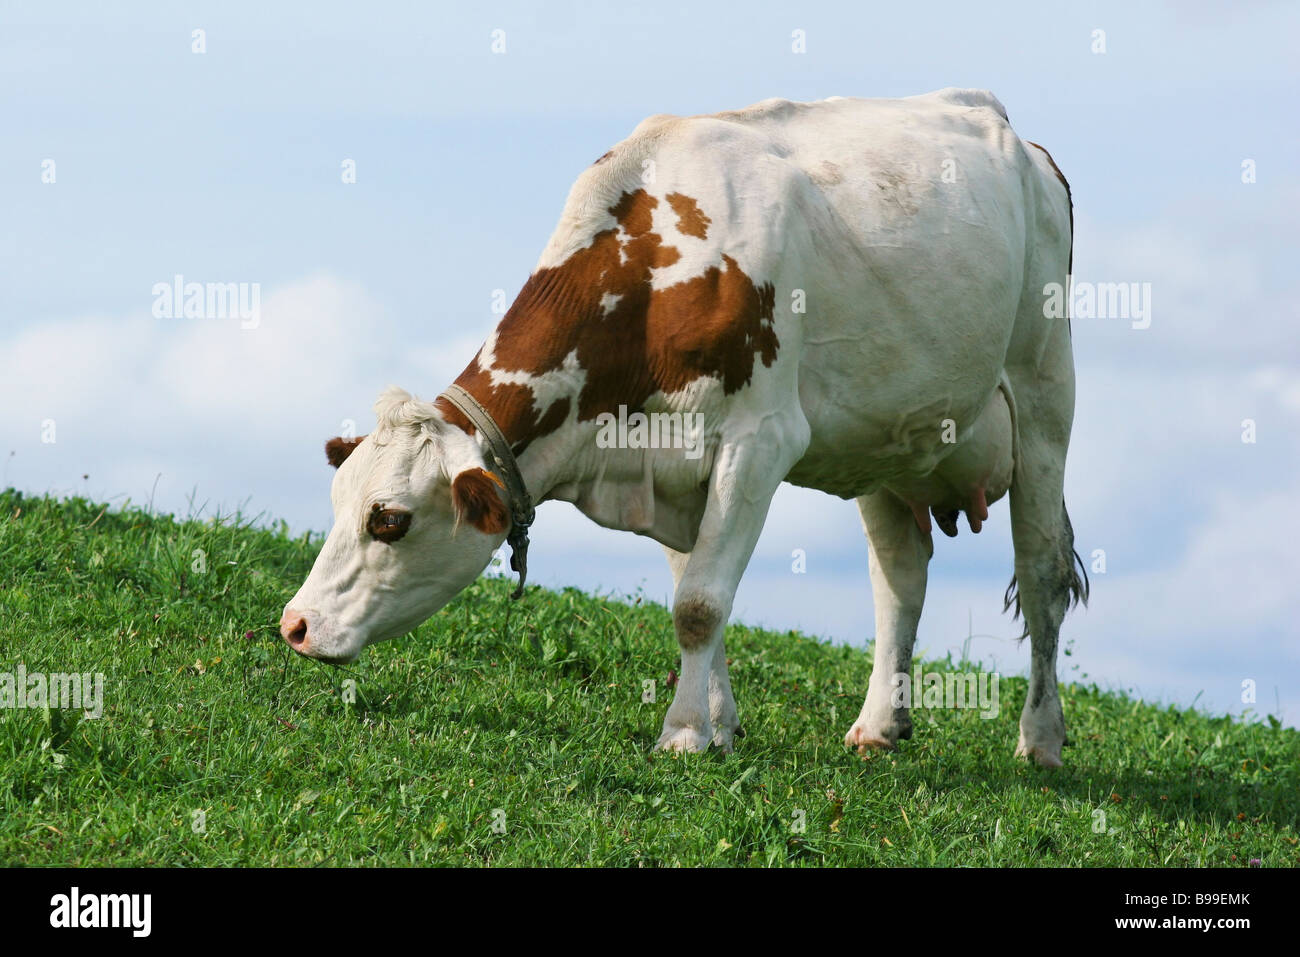 Dairy cow grazing in pasture, close-up - Stock Image